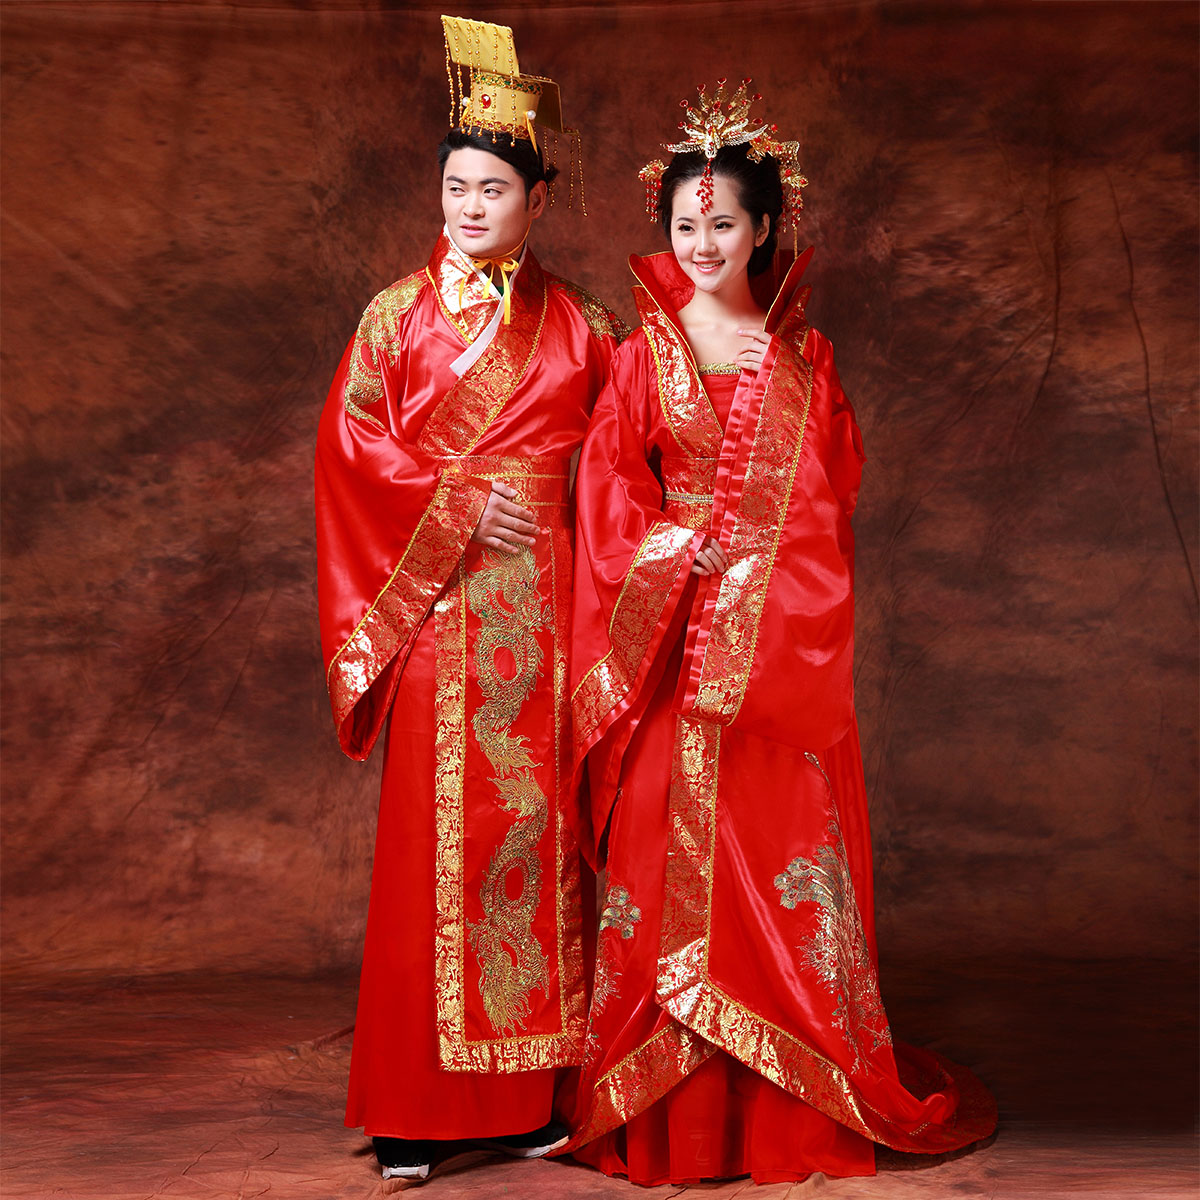 Royal Chinese Dress images